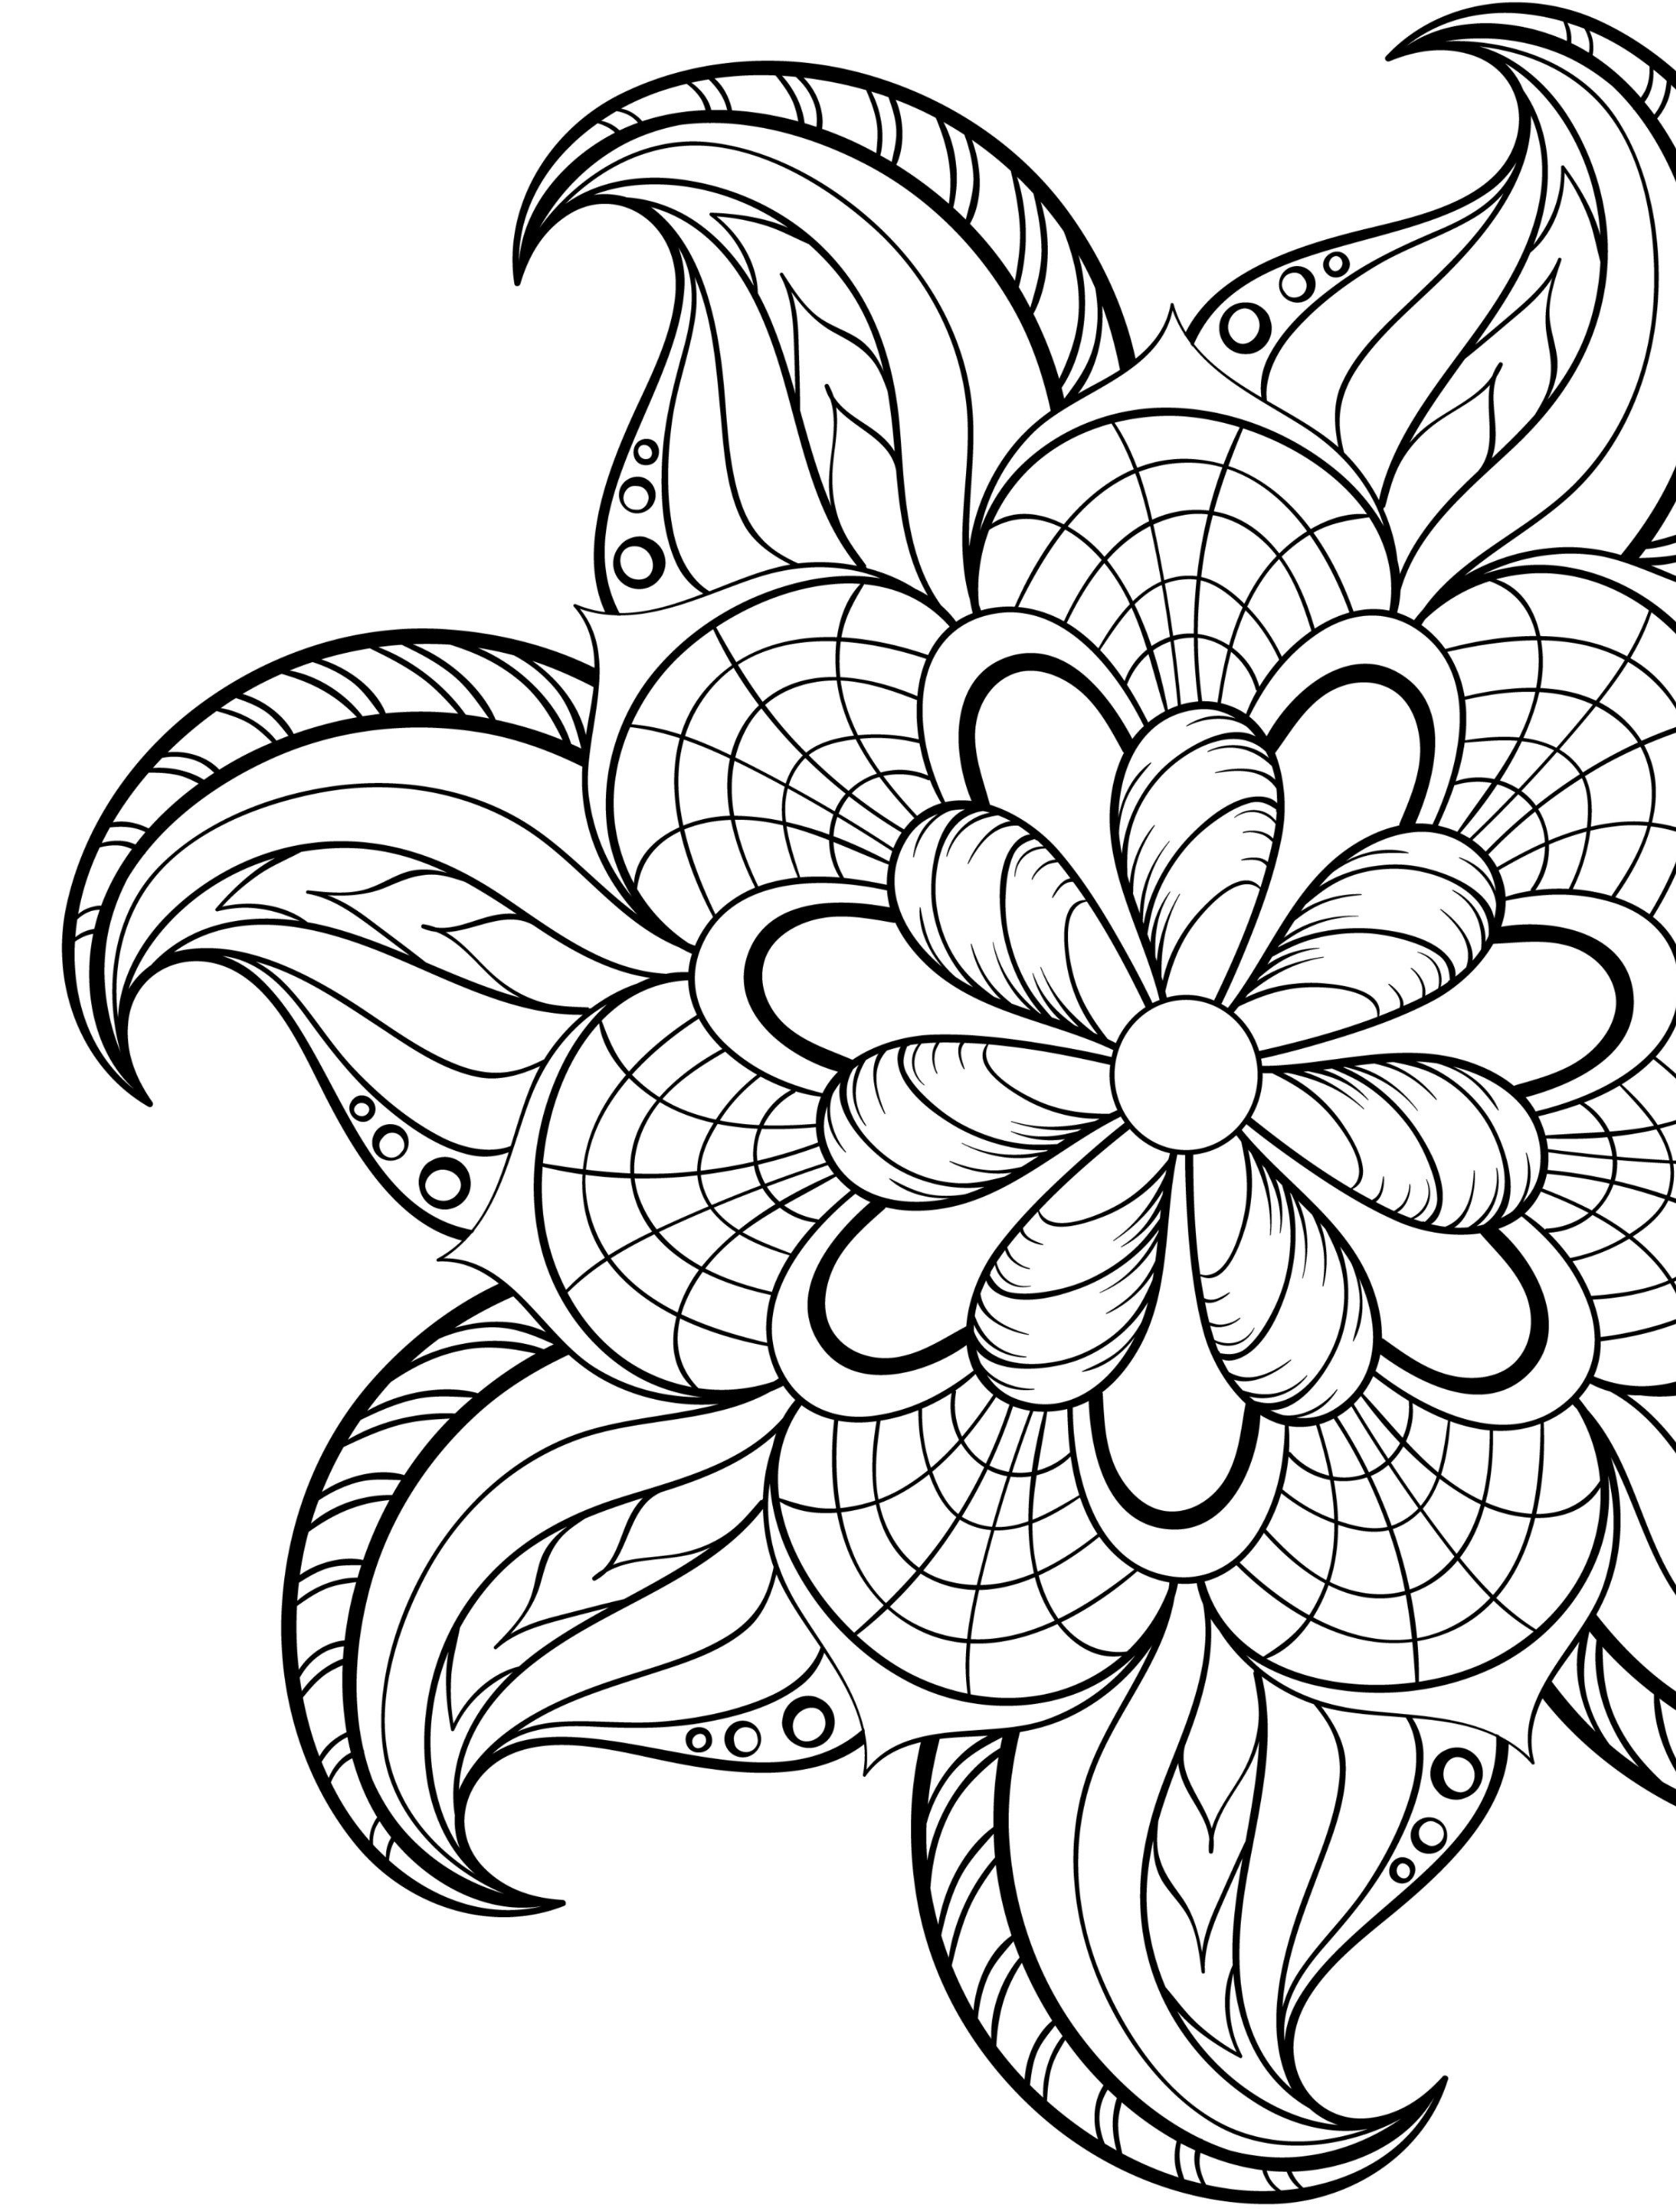 20 Gorgeous Free Printable Adult Coloring Pages … | Pictures | Print… - Free Printable Flower Coloring Pages For Adults